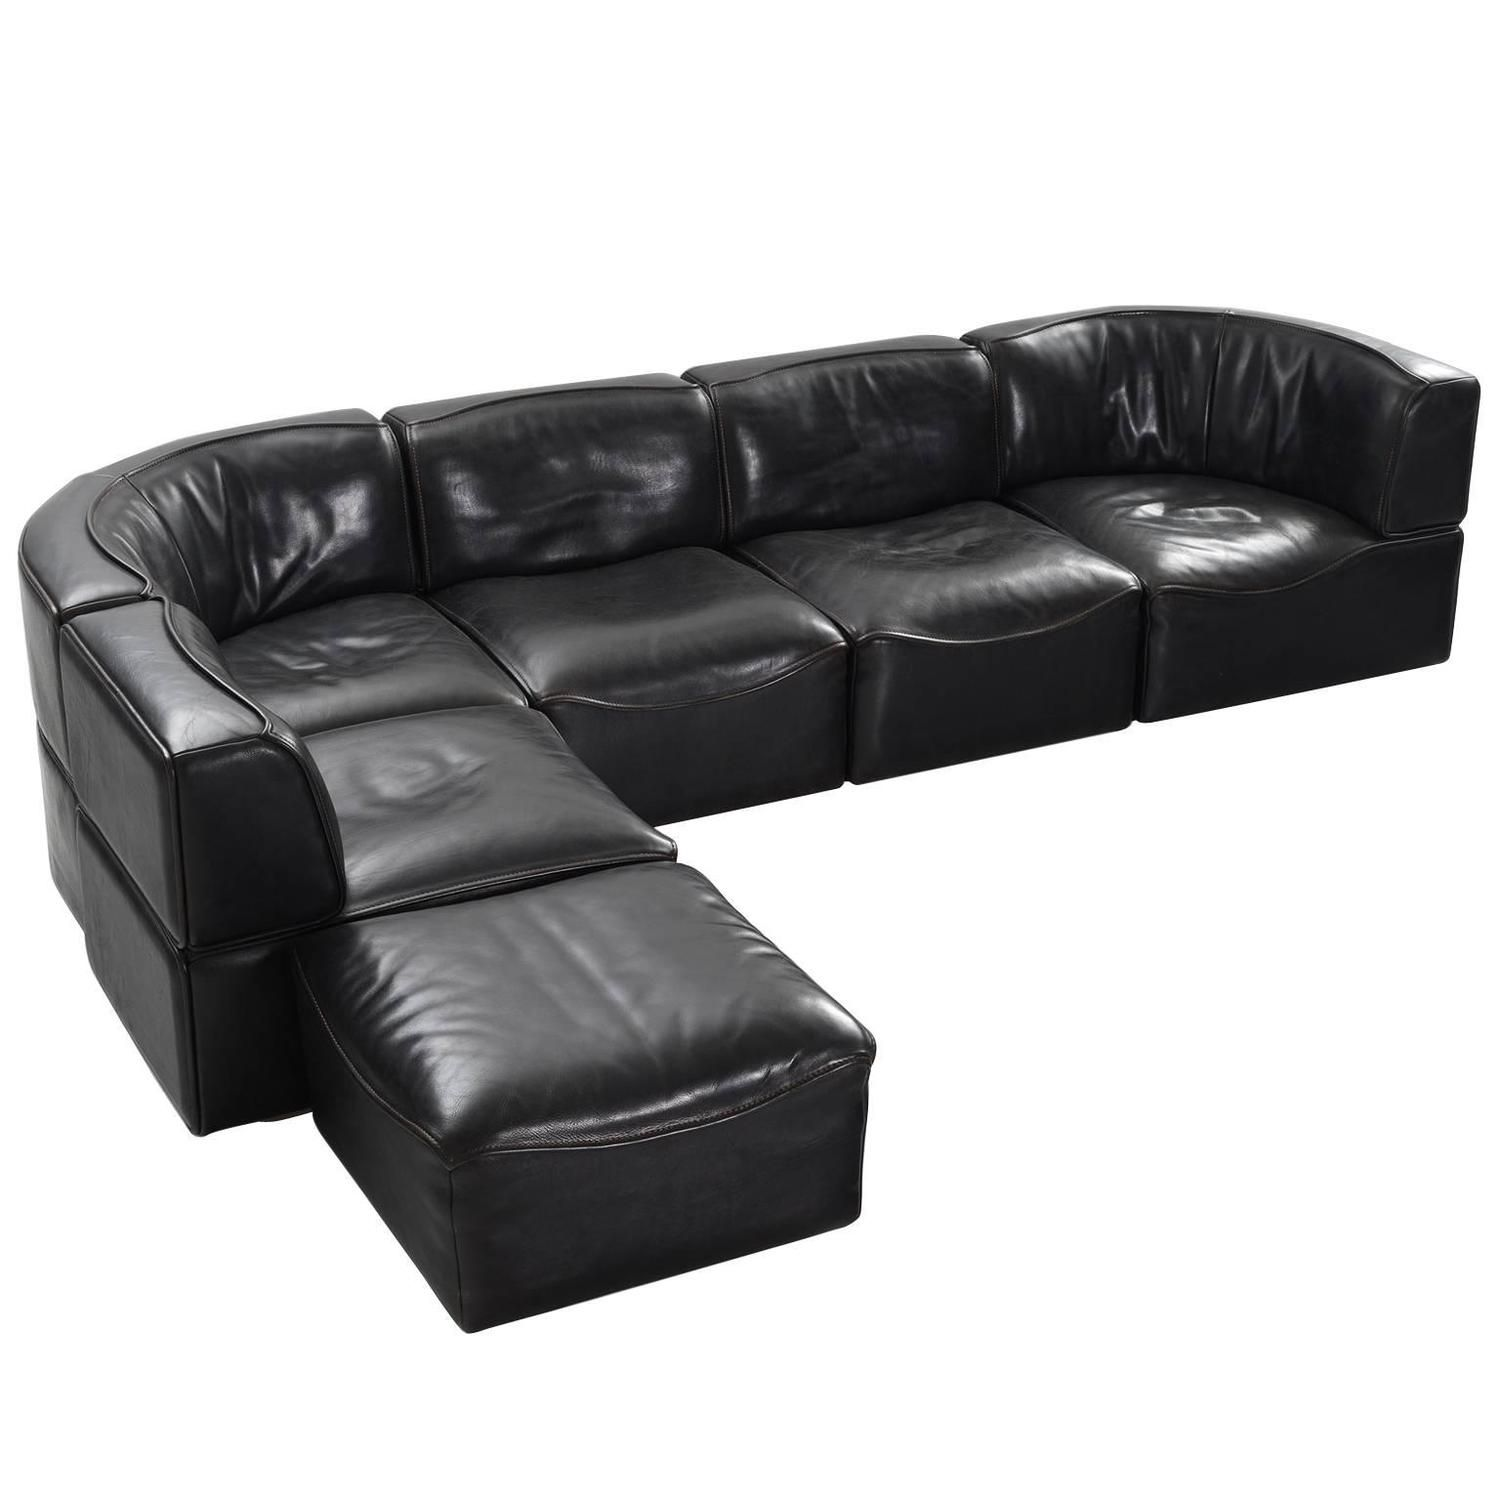 De Sede Ds 15 Modular Sofa In Black Buffalo Leather Sofa Set Price Modular Sofa Sofa Set